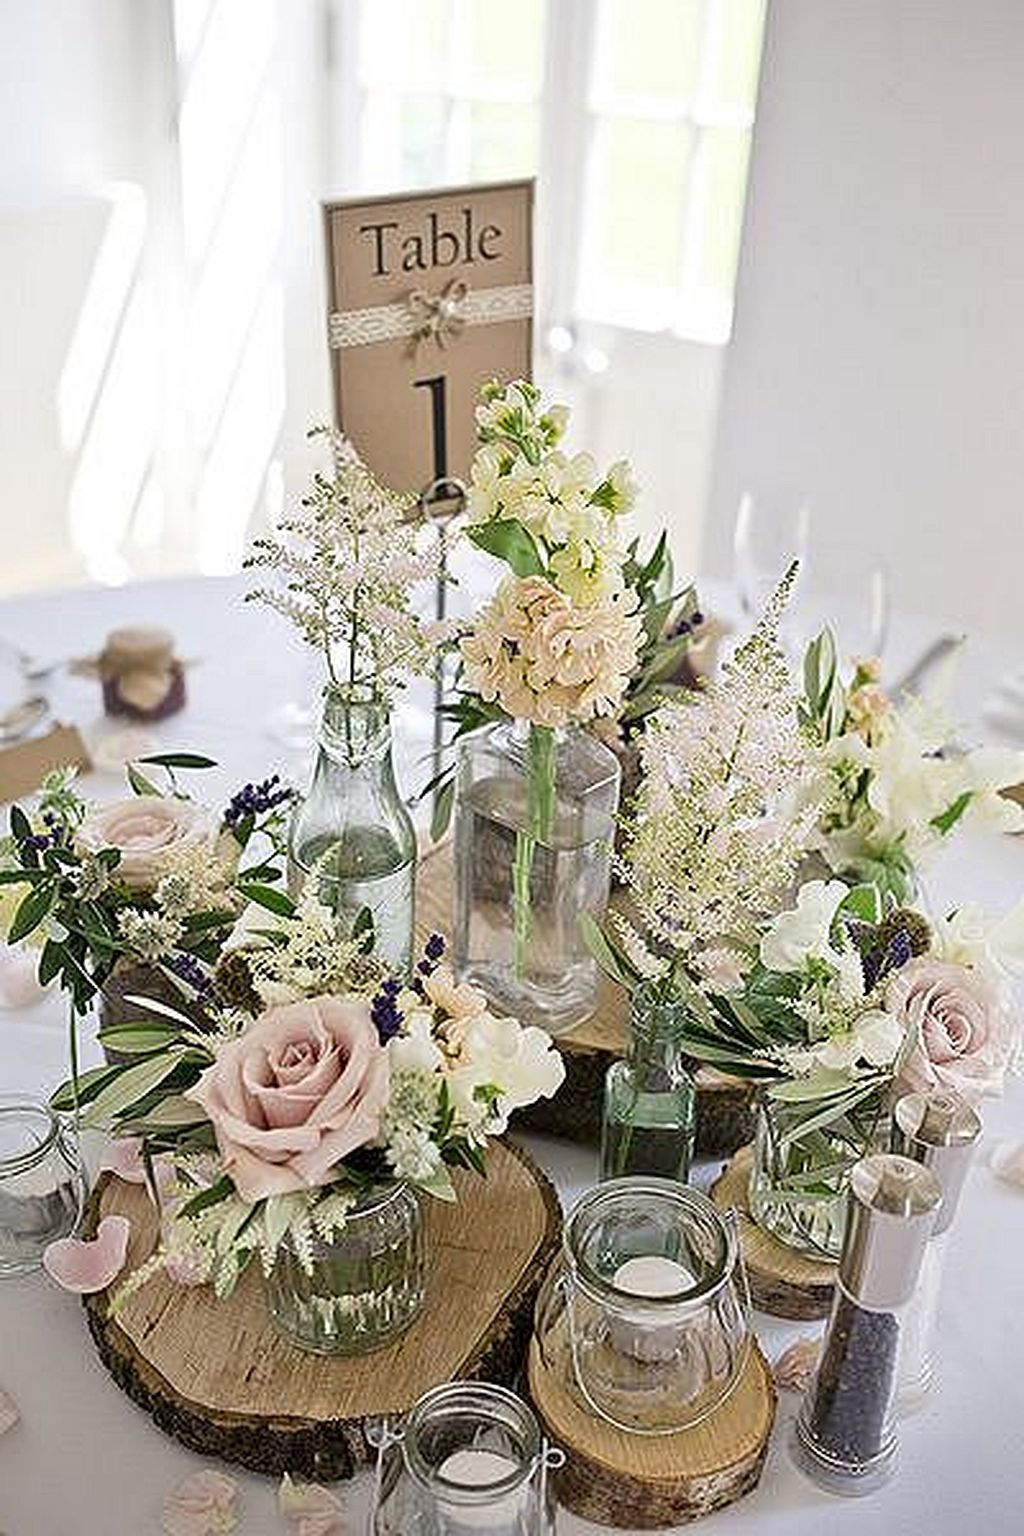 Like Wood Bases Table Avec Images Mariage Table Rustique